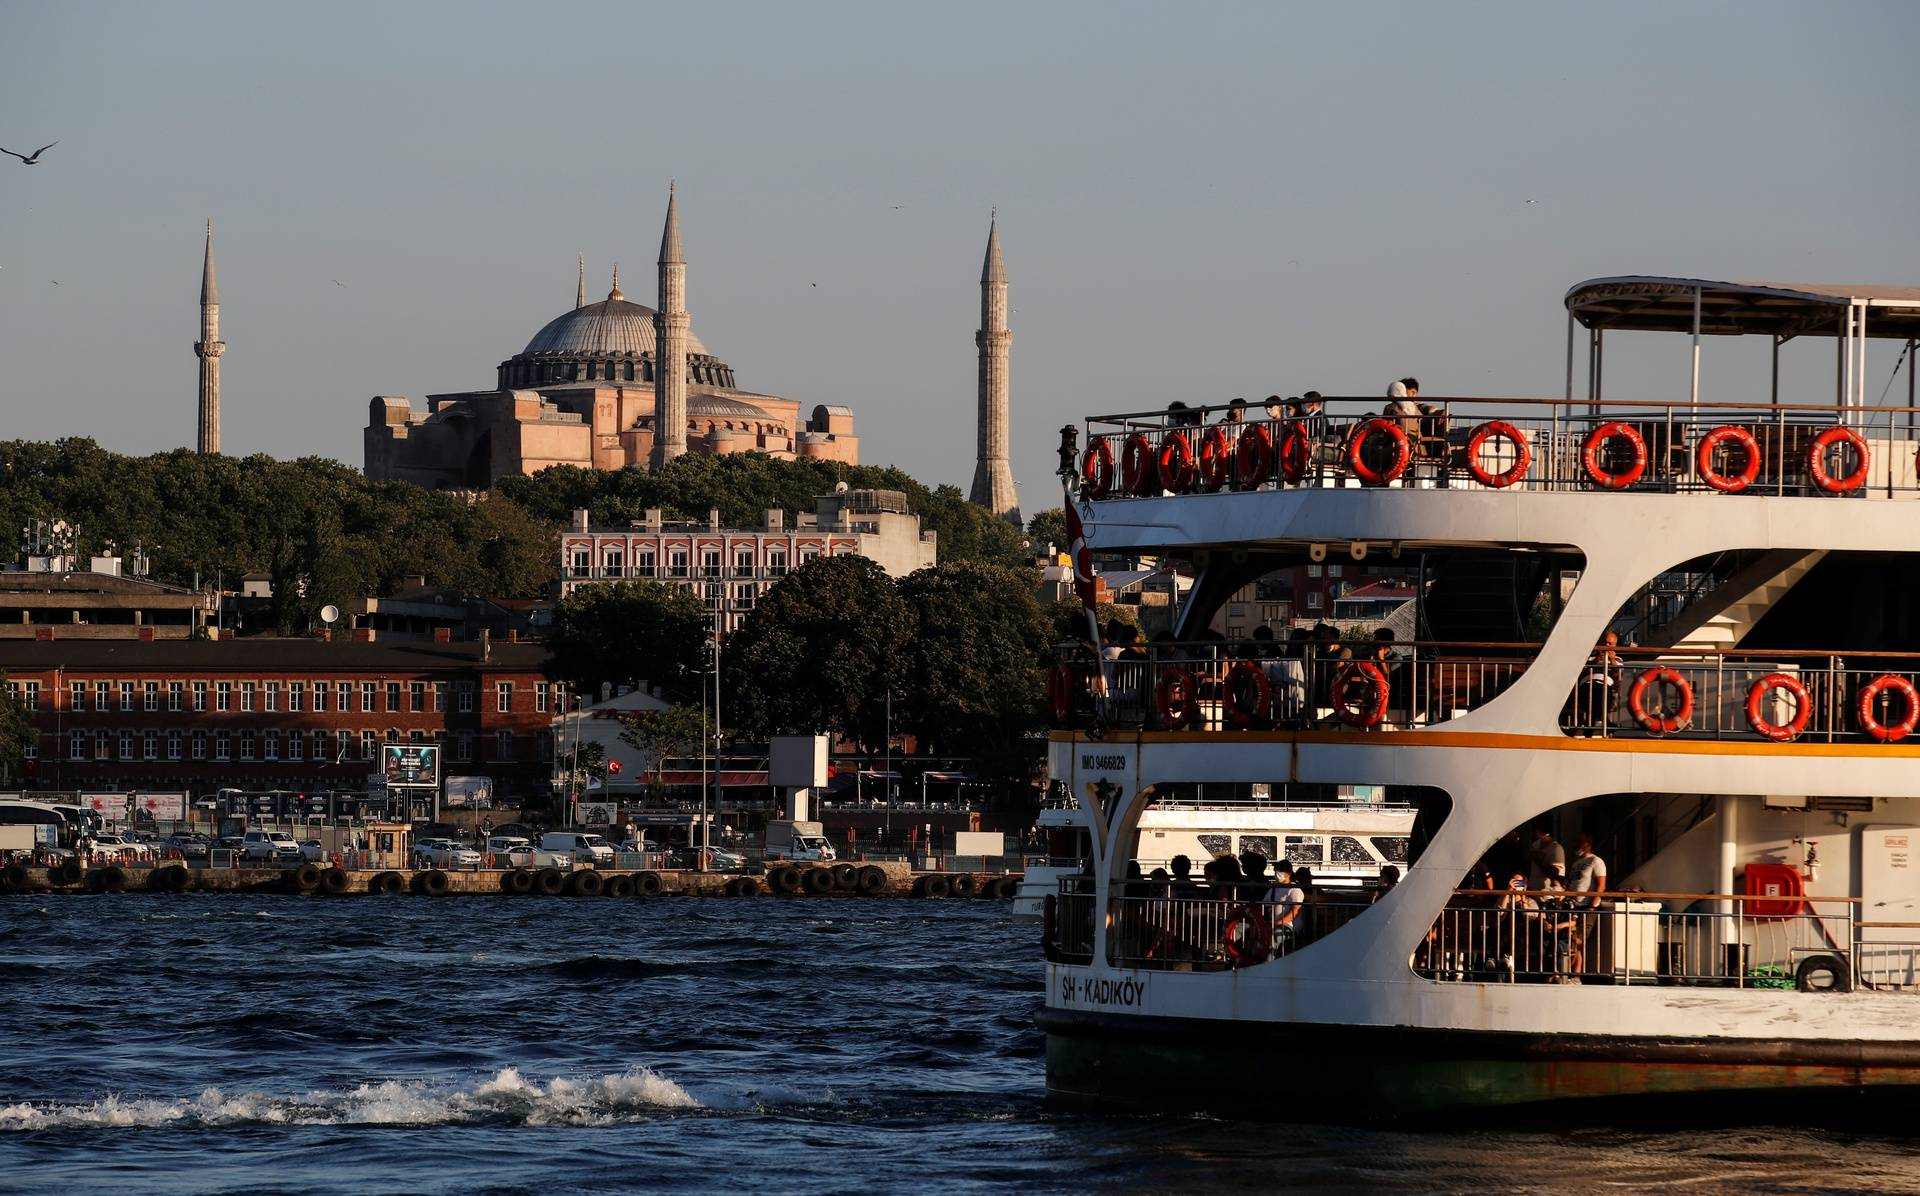 A ferry sails through the waters of Marmara sea as Hagia Sophia or Ayasofya-i Kebir Camii is seen in the background in Istanbul